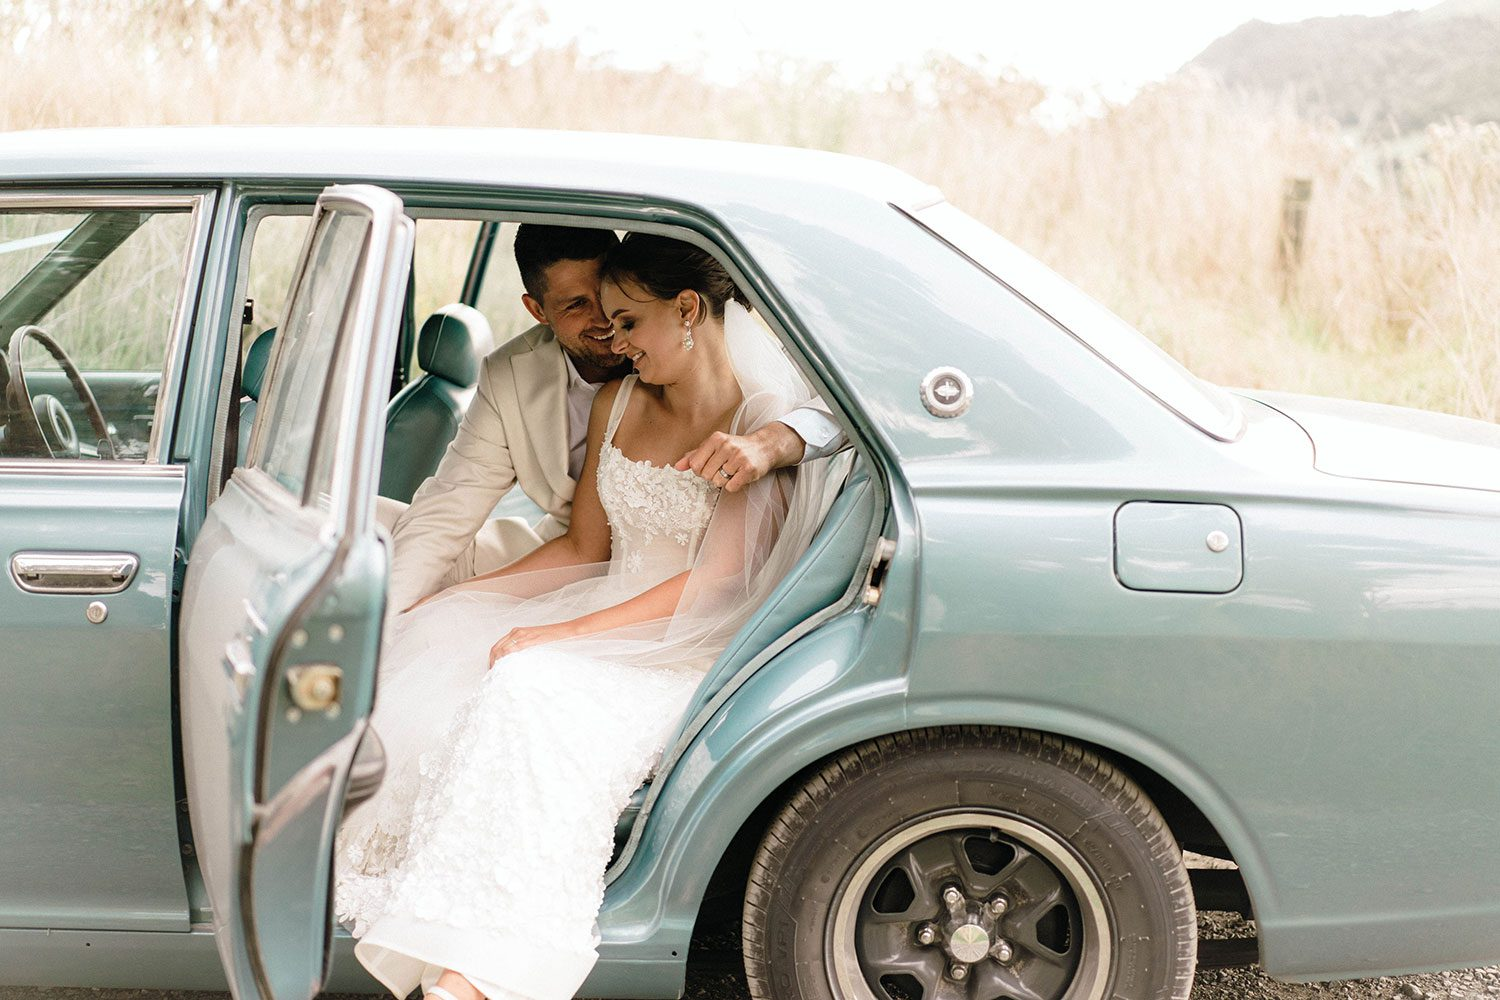 Bride wears bespoke E'More lace gown with boned bodice with hand beaded flower applique and full lace train by Auckland wedding dress maker Vinka designs - with groom in vintage car